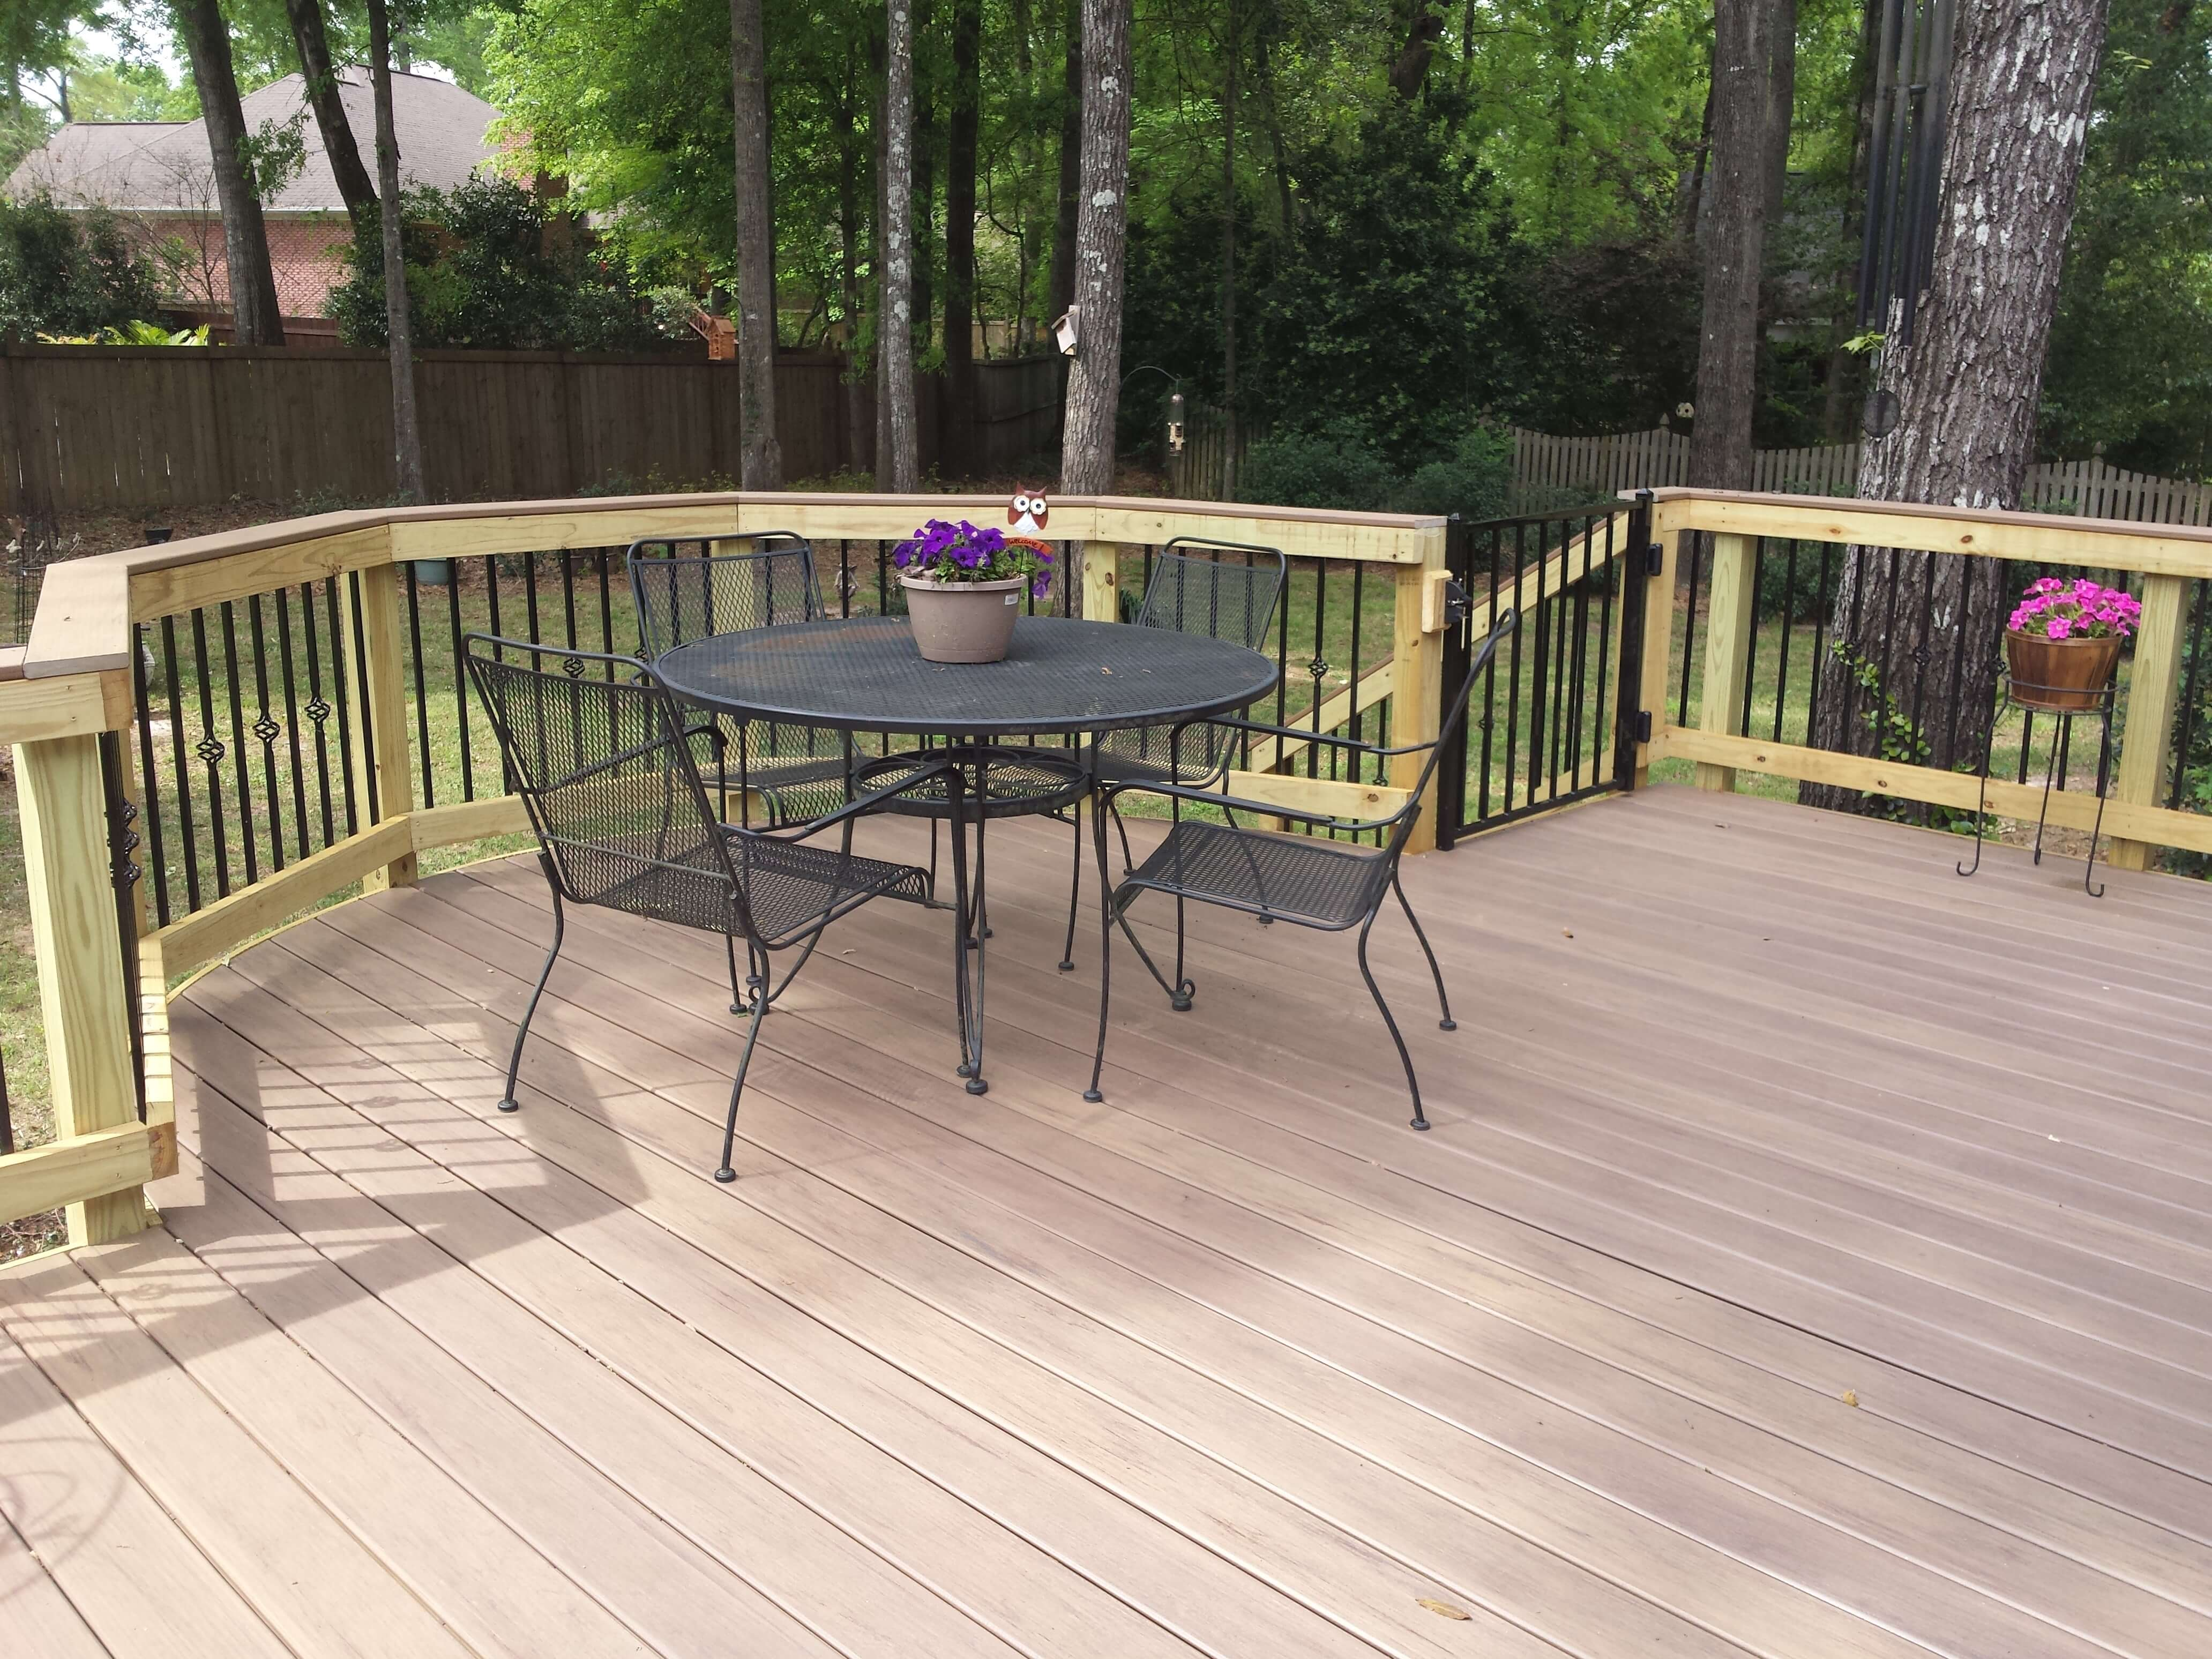 Backyard wood deck with seating area